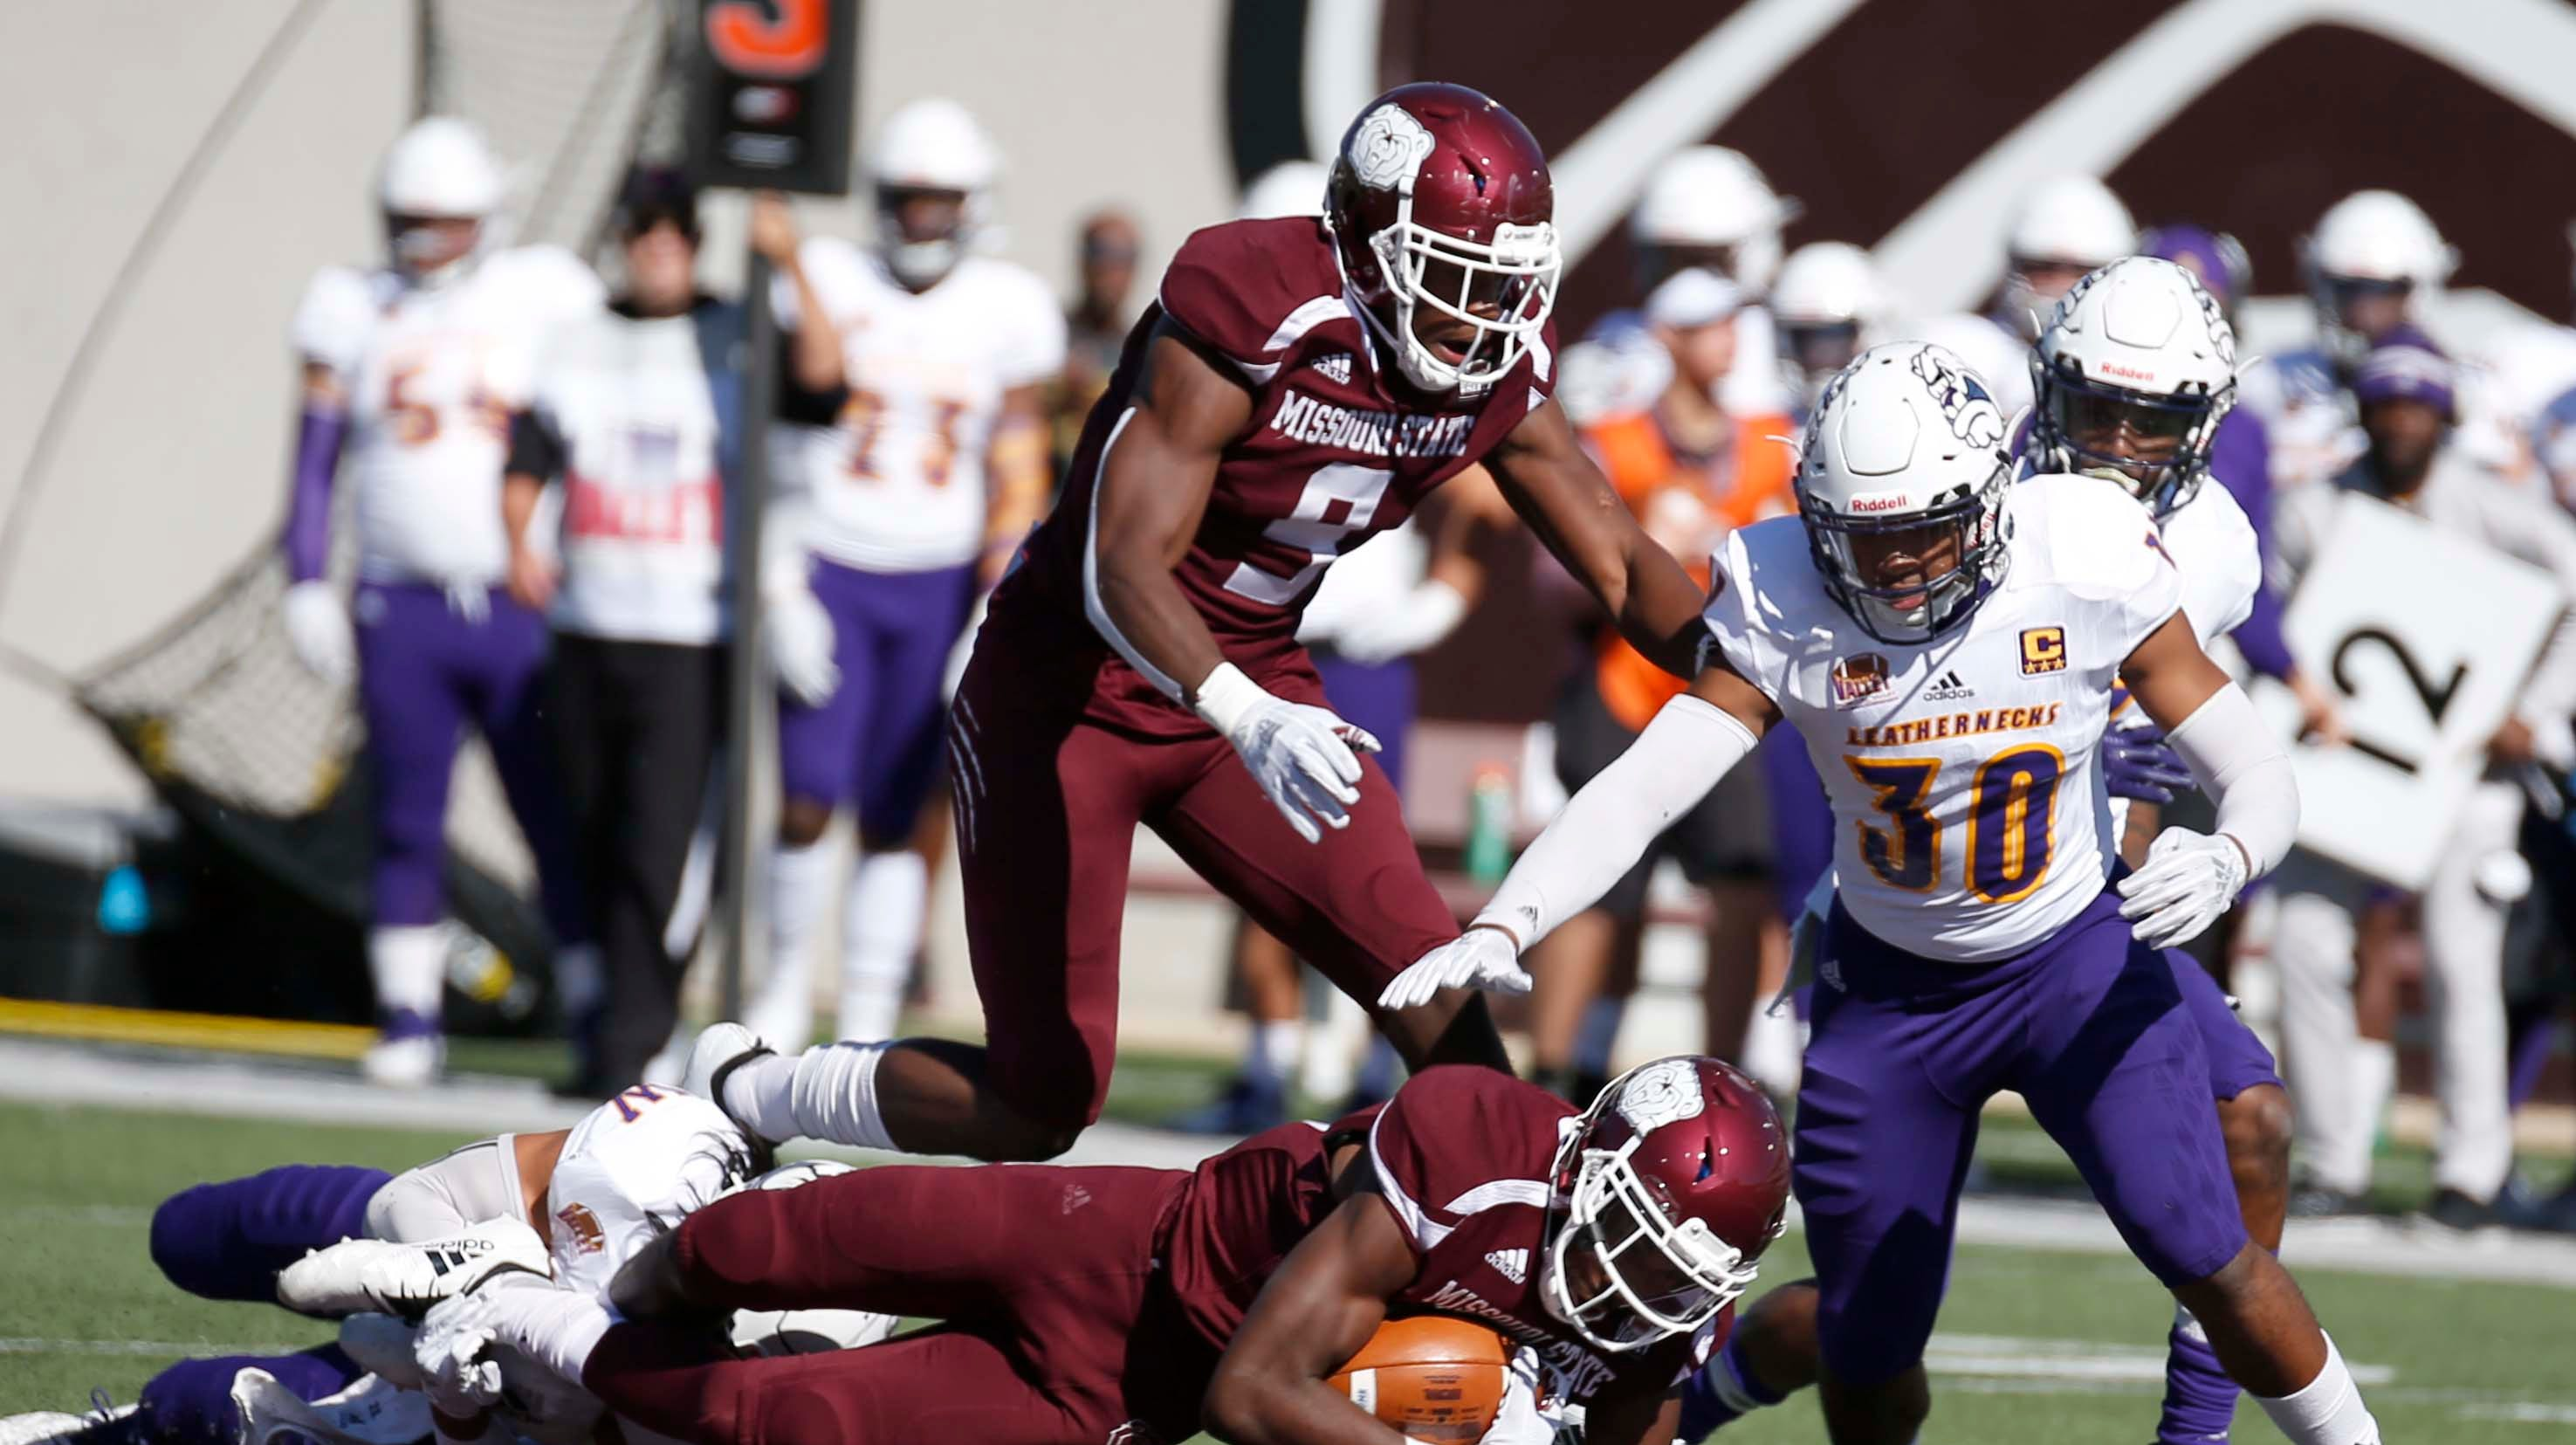 Missouri State's Lorenzo Thomas gains a first down against Western Illinois at Plaster Field in Springfield on October 20, 2018.